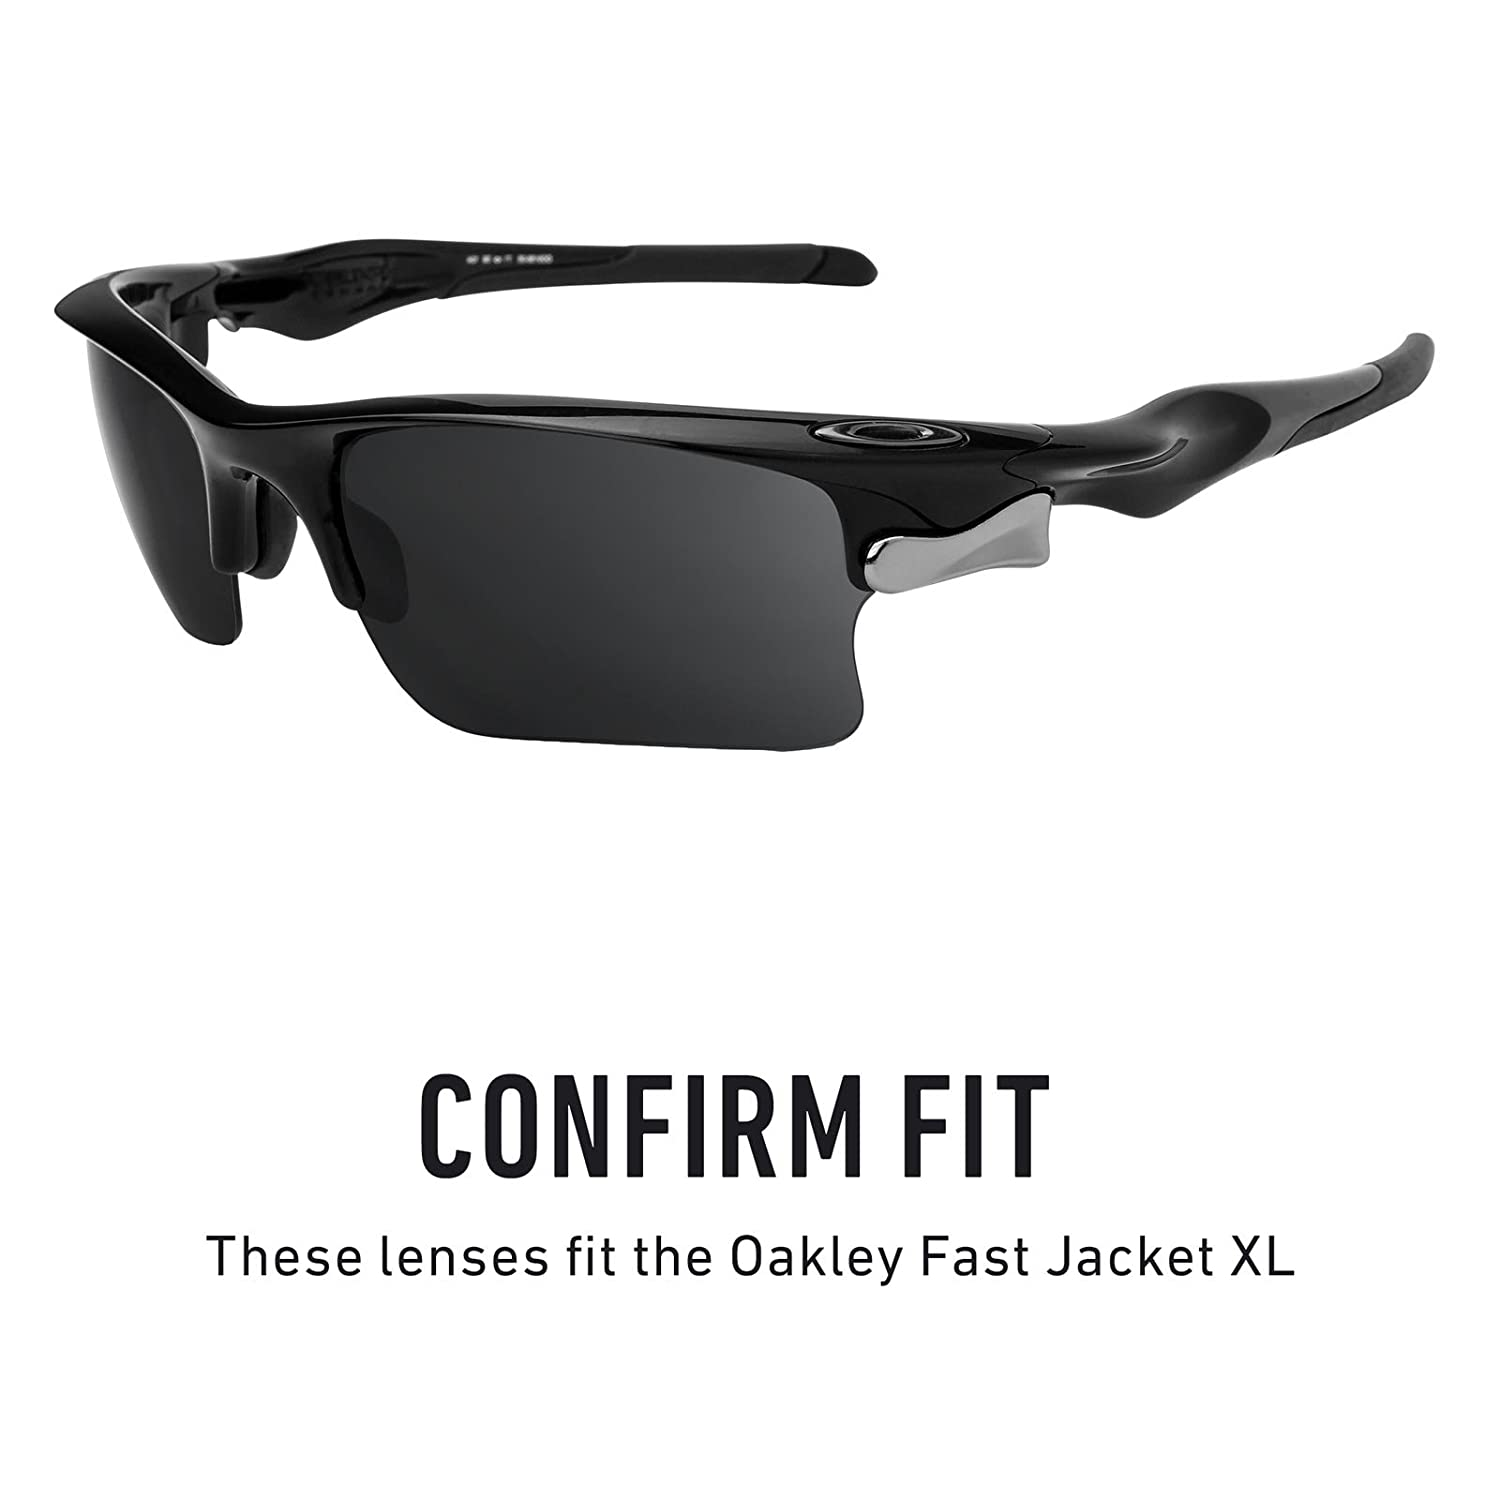 936f39dca3 Amazon.com  Revant Polarized Replacement Lenses for Oakley Fast Jacket XL  Elite Black Chrome MirrorShield  Sports   Outdoors